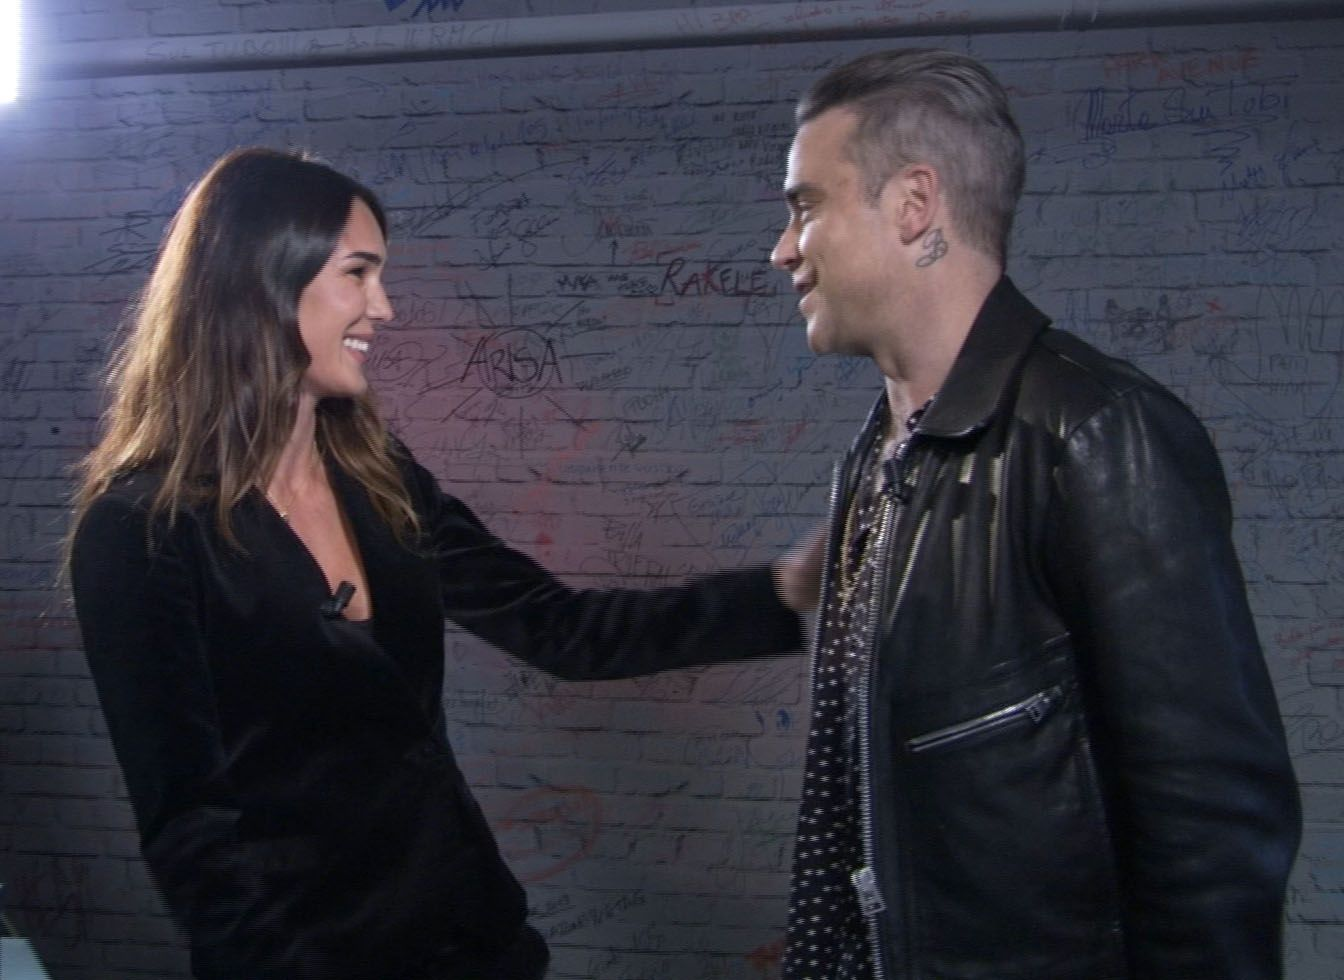 Robbie Williams a Verissimo: 'Sono una persona timida e sensibile'